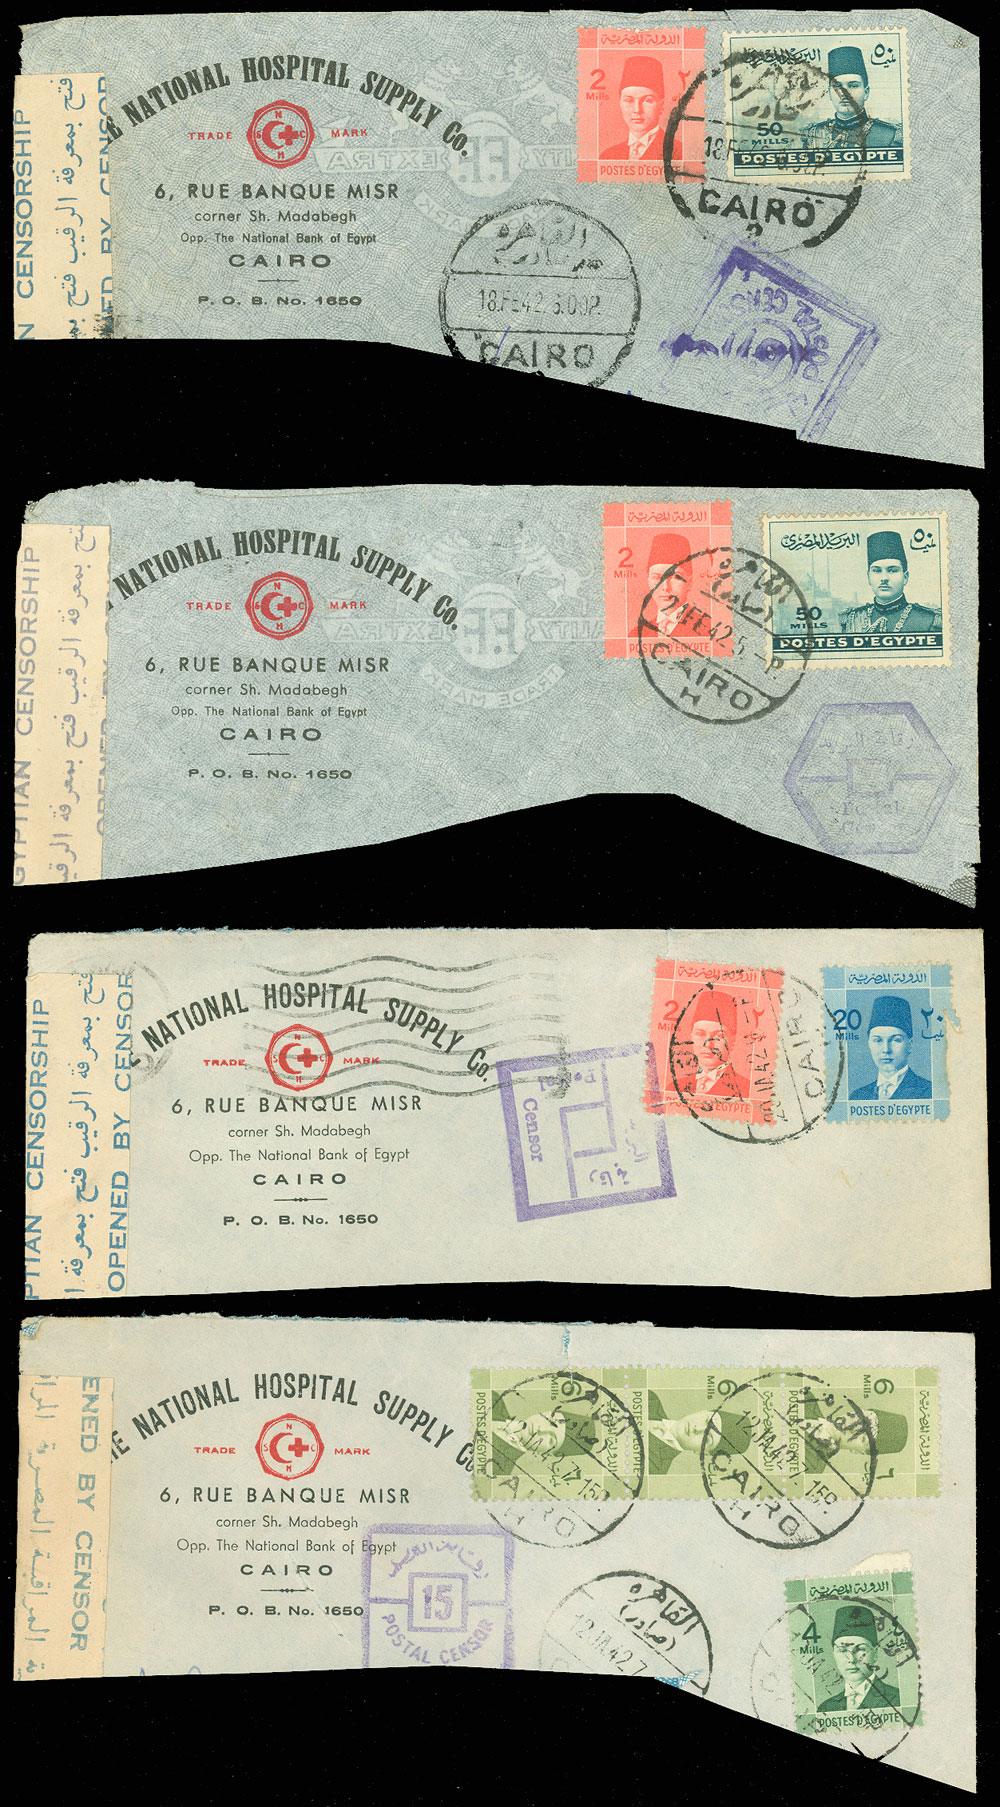 1942-WWII-EGYPT-4-Partial-Covers-CENSOR-TAPE-amp-HANDSTAMPS-Hospital-Supply-Co